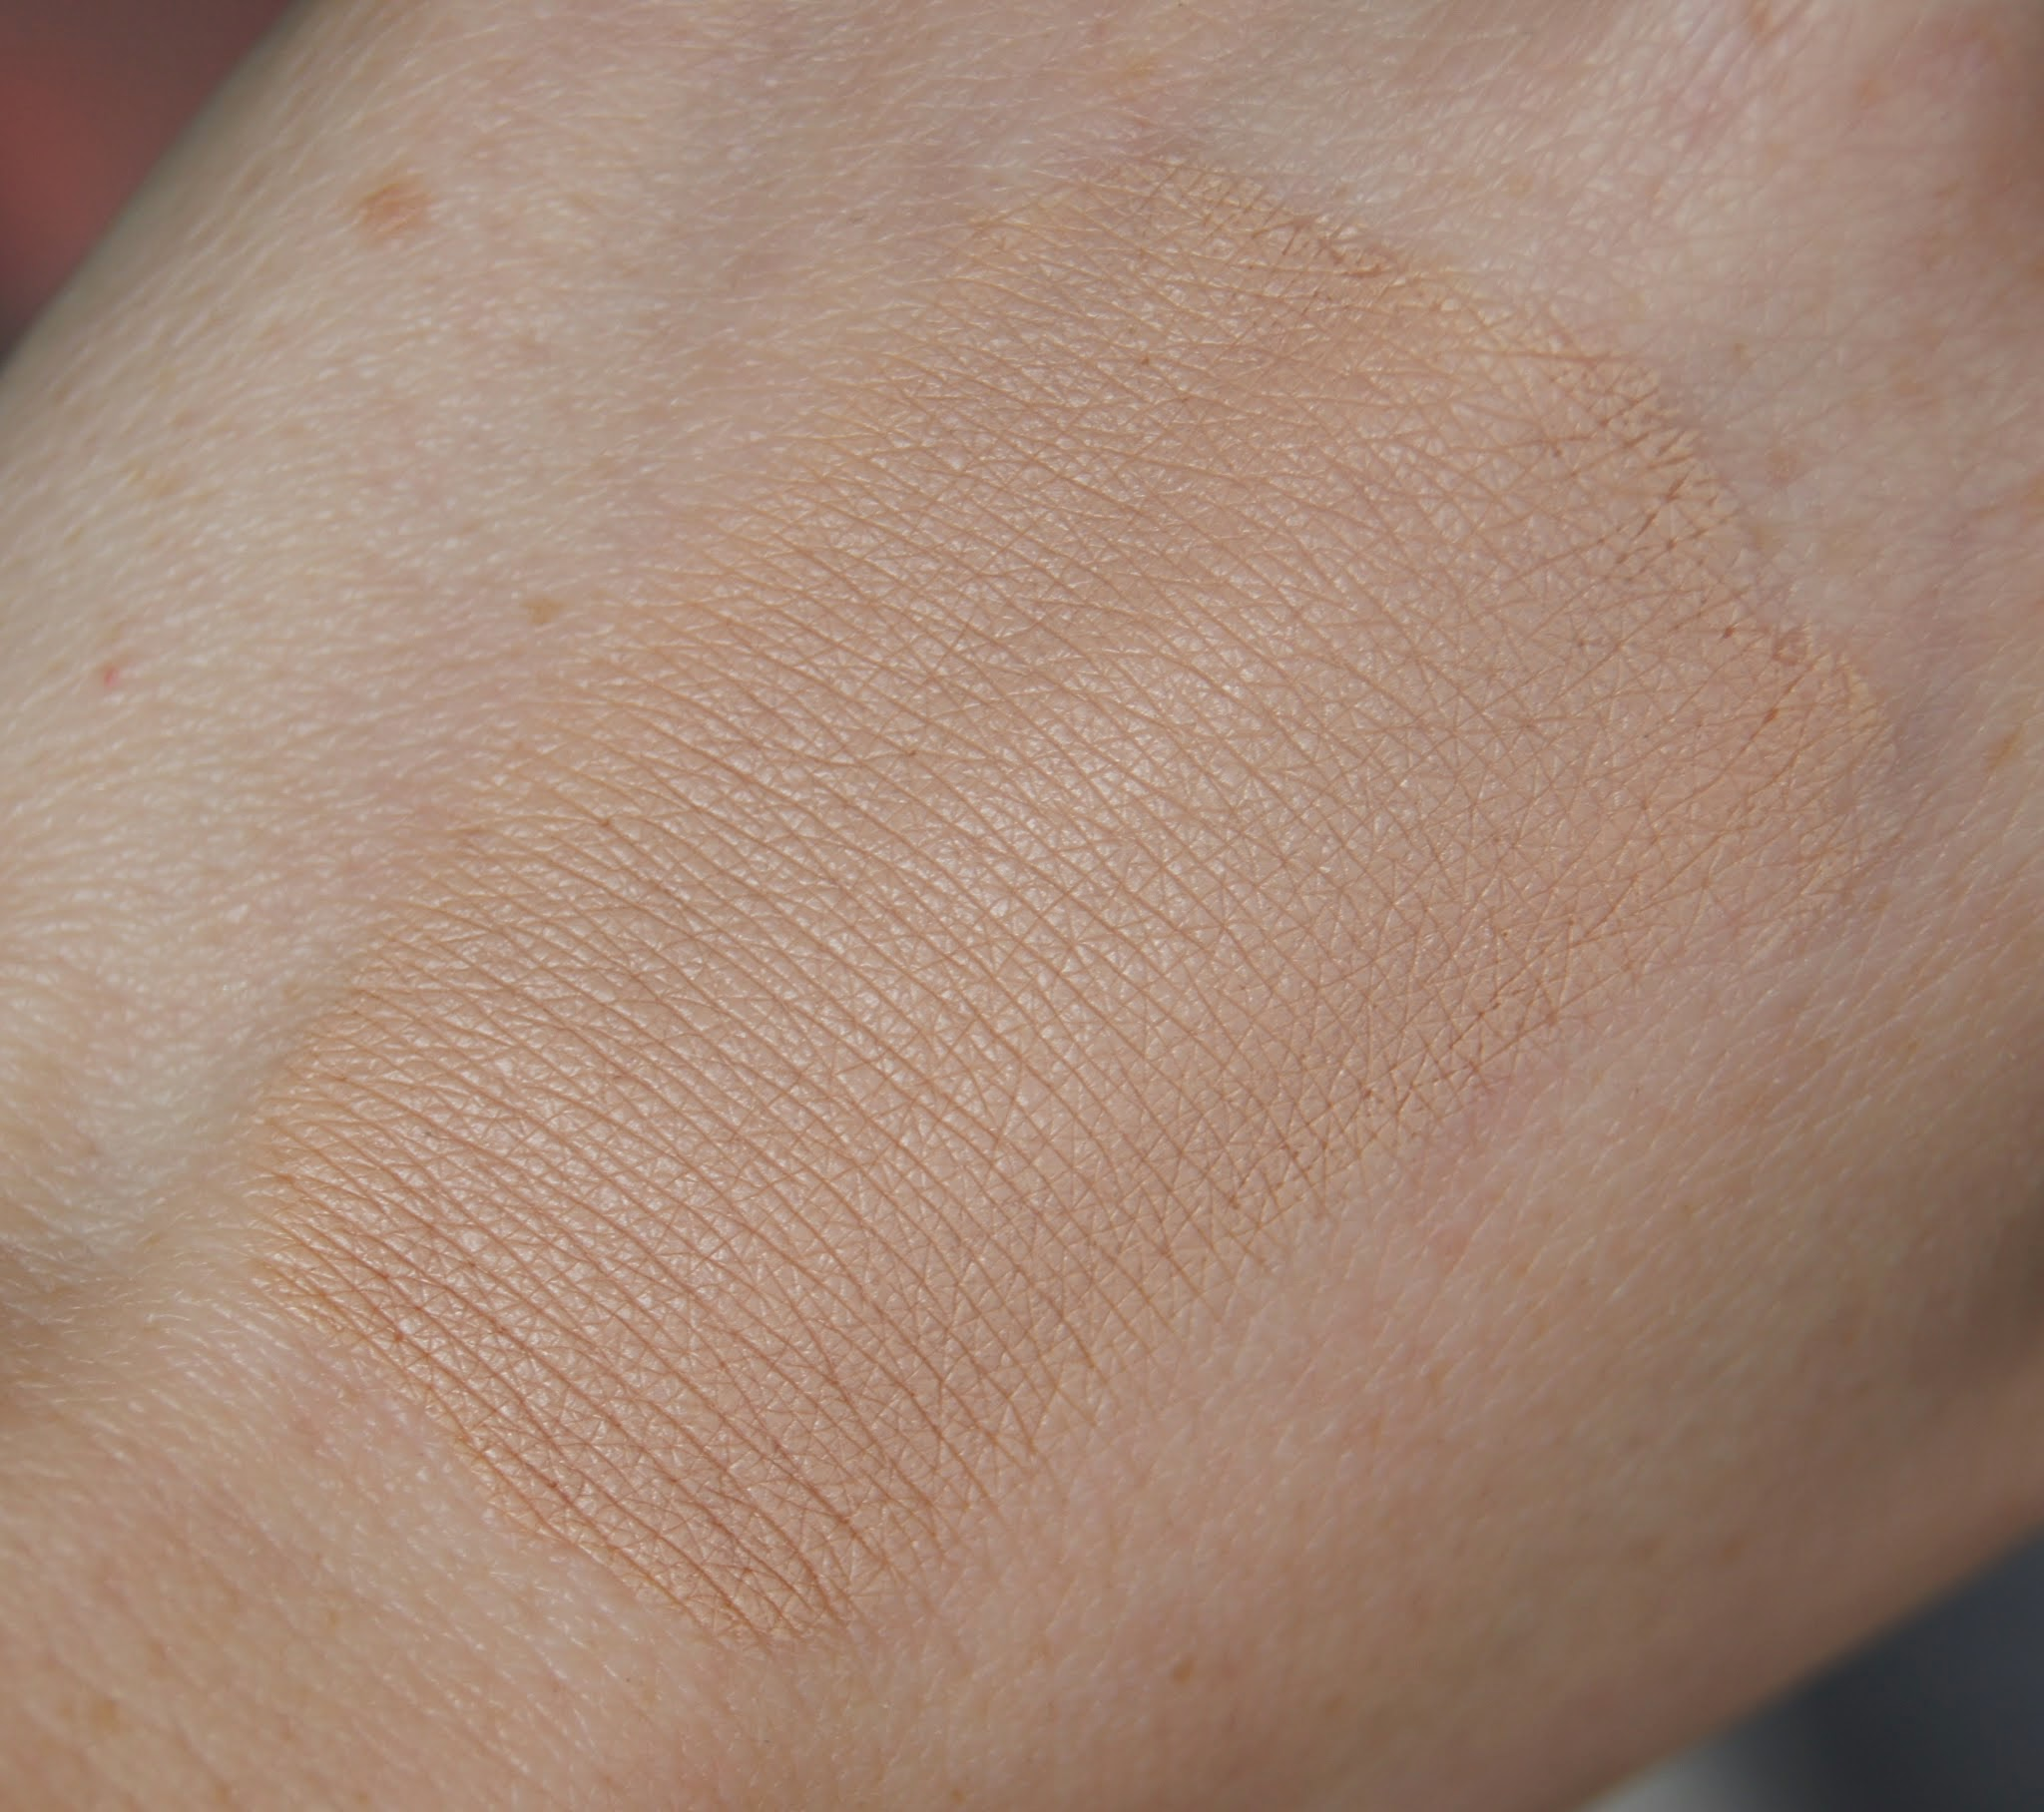 make up for ever mufe full cover extreme camouflage cream concealer shade 4 swatch review